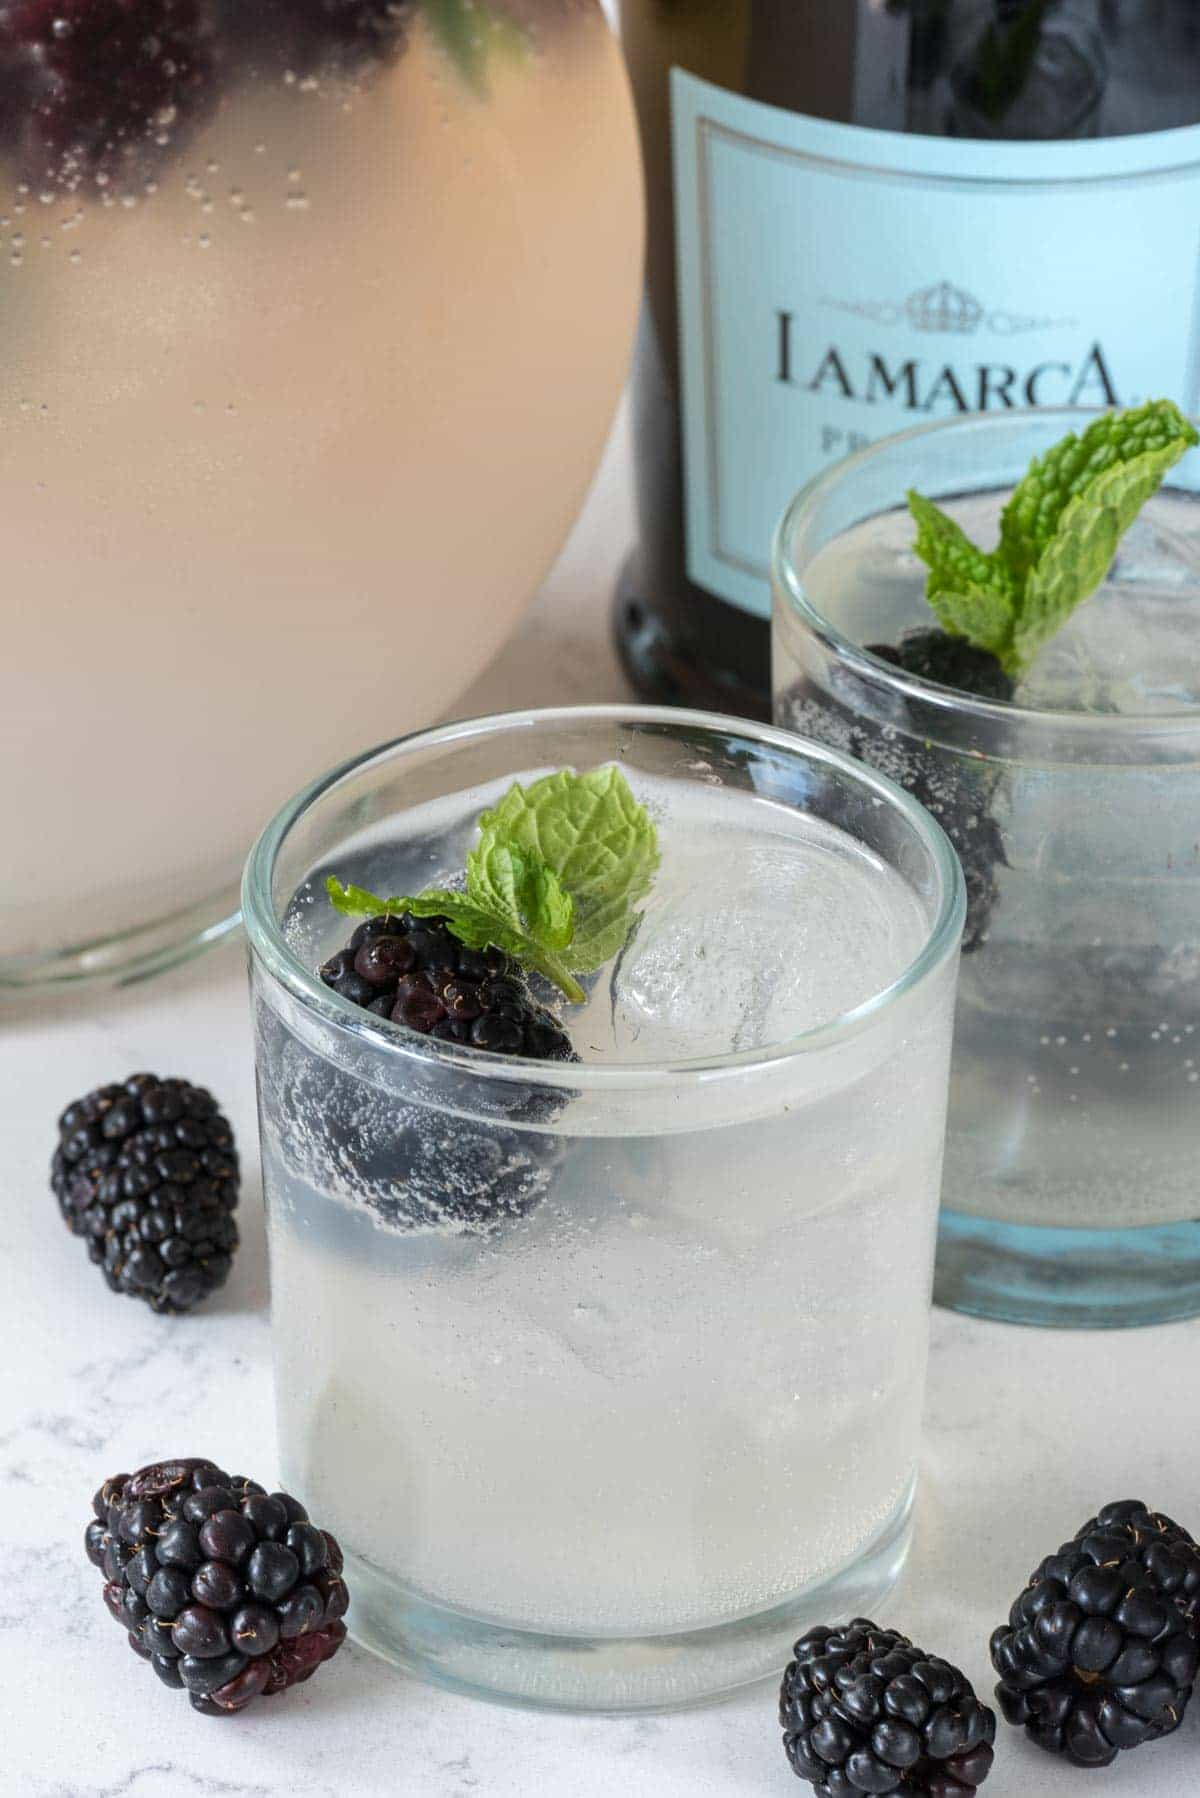 Lemonade Prosecco Punch Recipe - such a great cocktail made with LaMarca Prosecco!